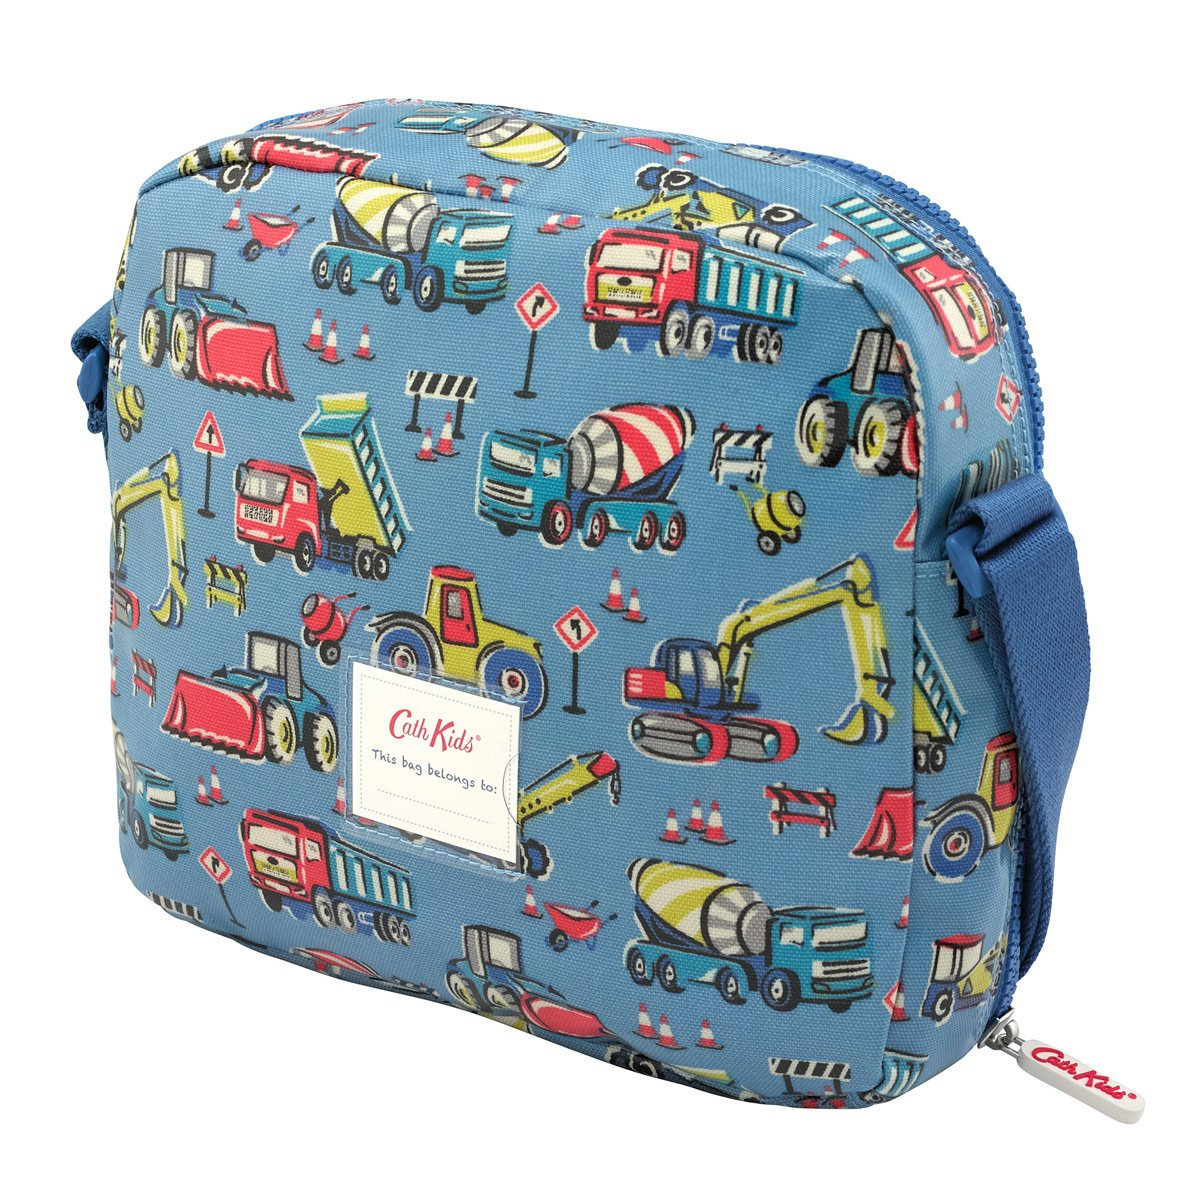 a1e0147c87 Cath Kidston Kids Lunch Bag in Blue Construction Design  Amazon.co.uk   Luggage